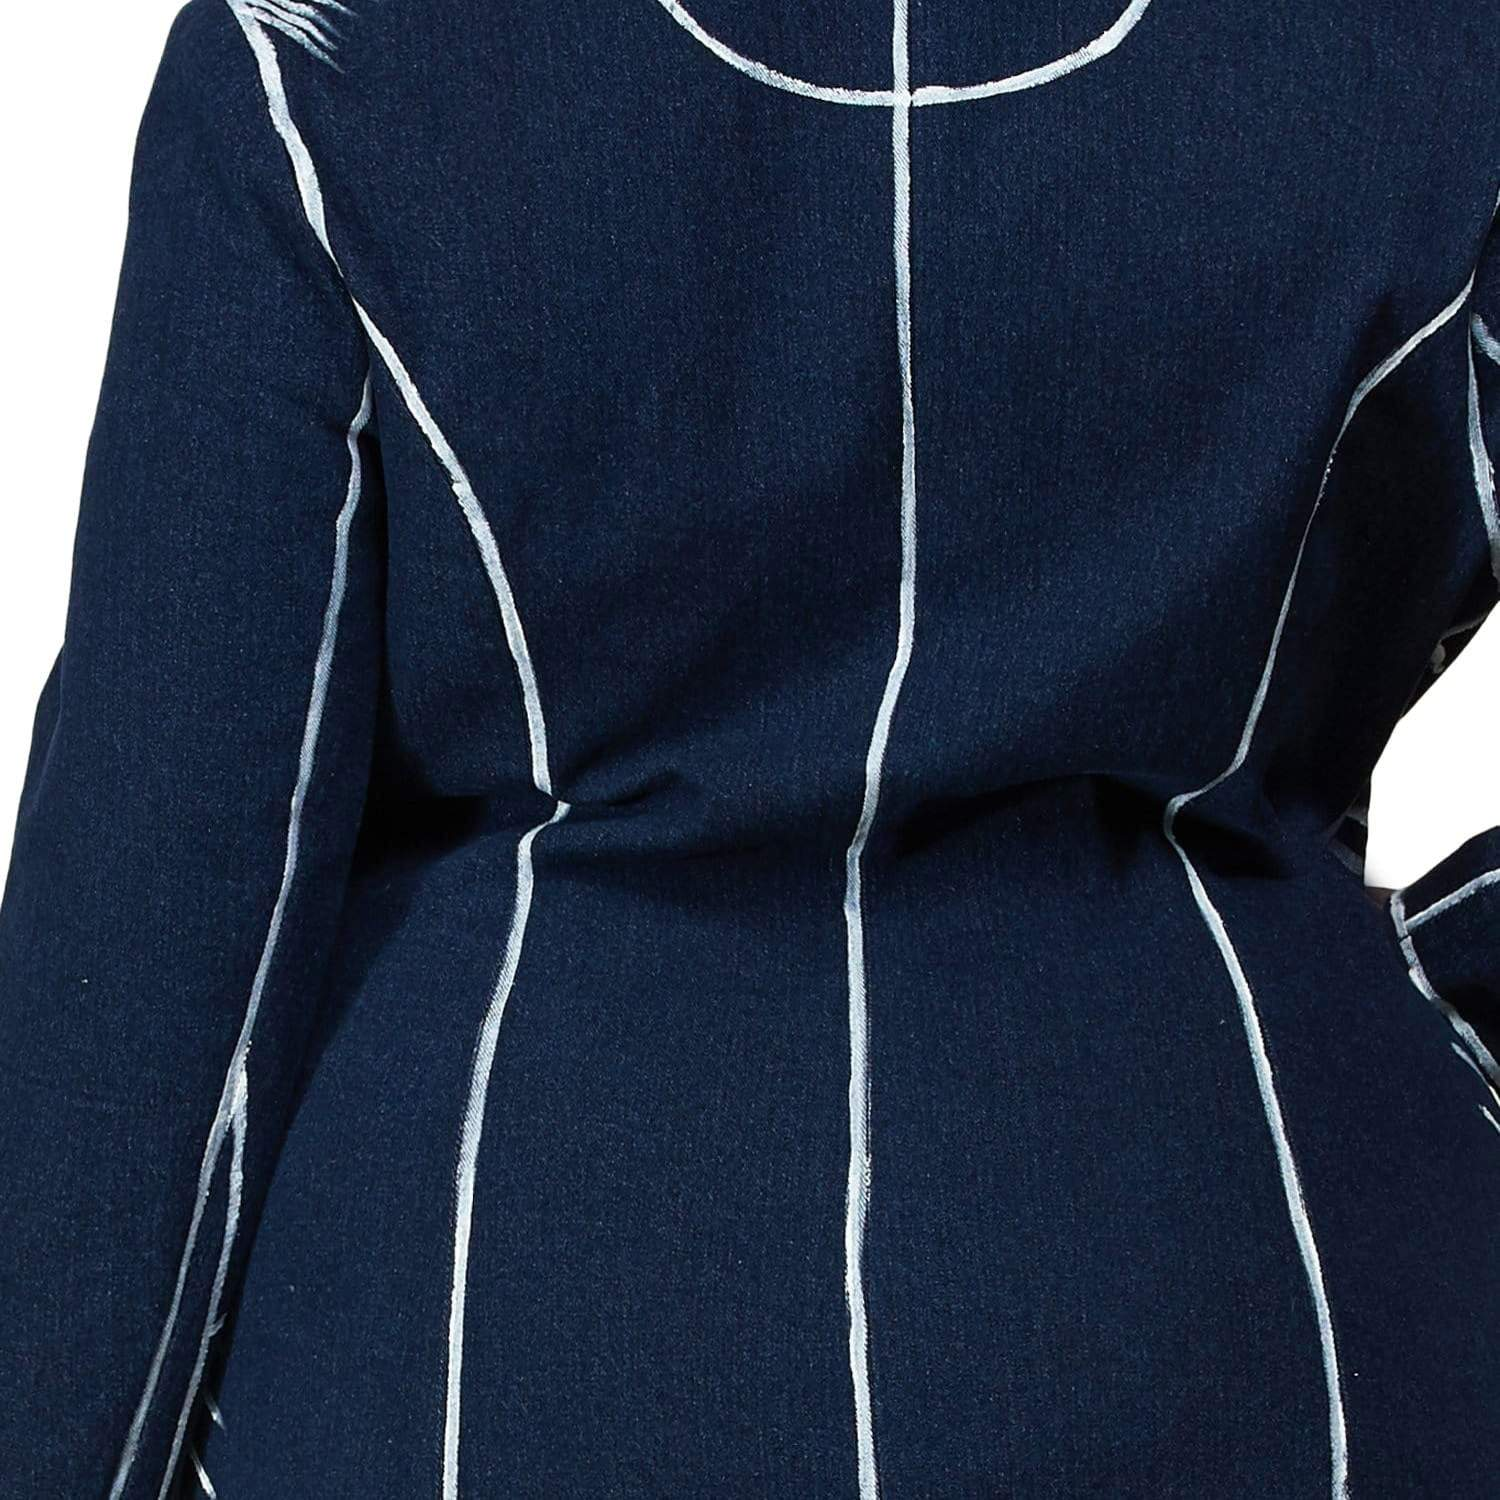 Blue Blazer Mini Dress - Posh Shoppe